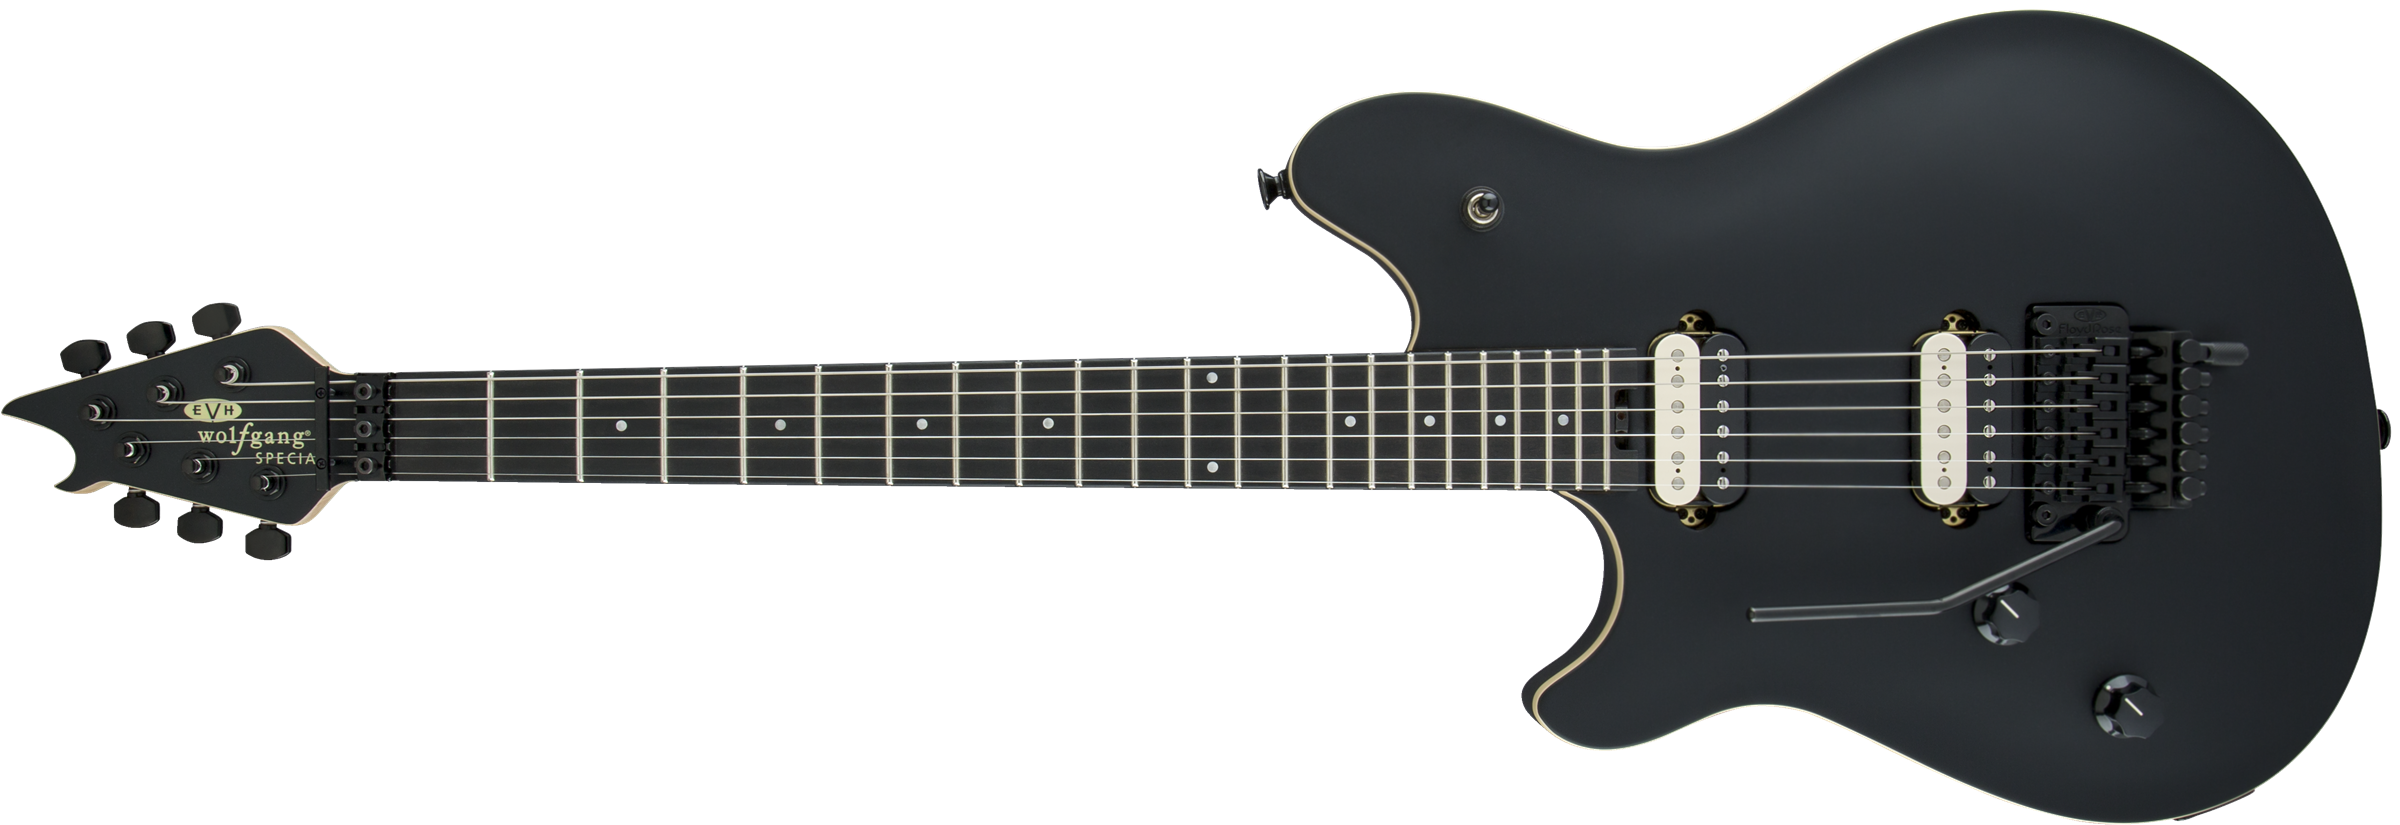 Wolfgang® Special LH, Ebony Fingerboard, Stealth Black